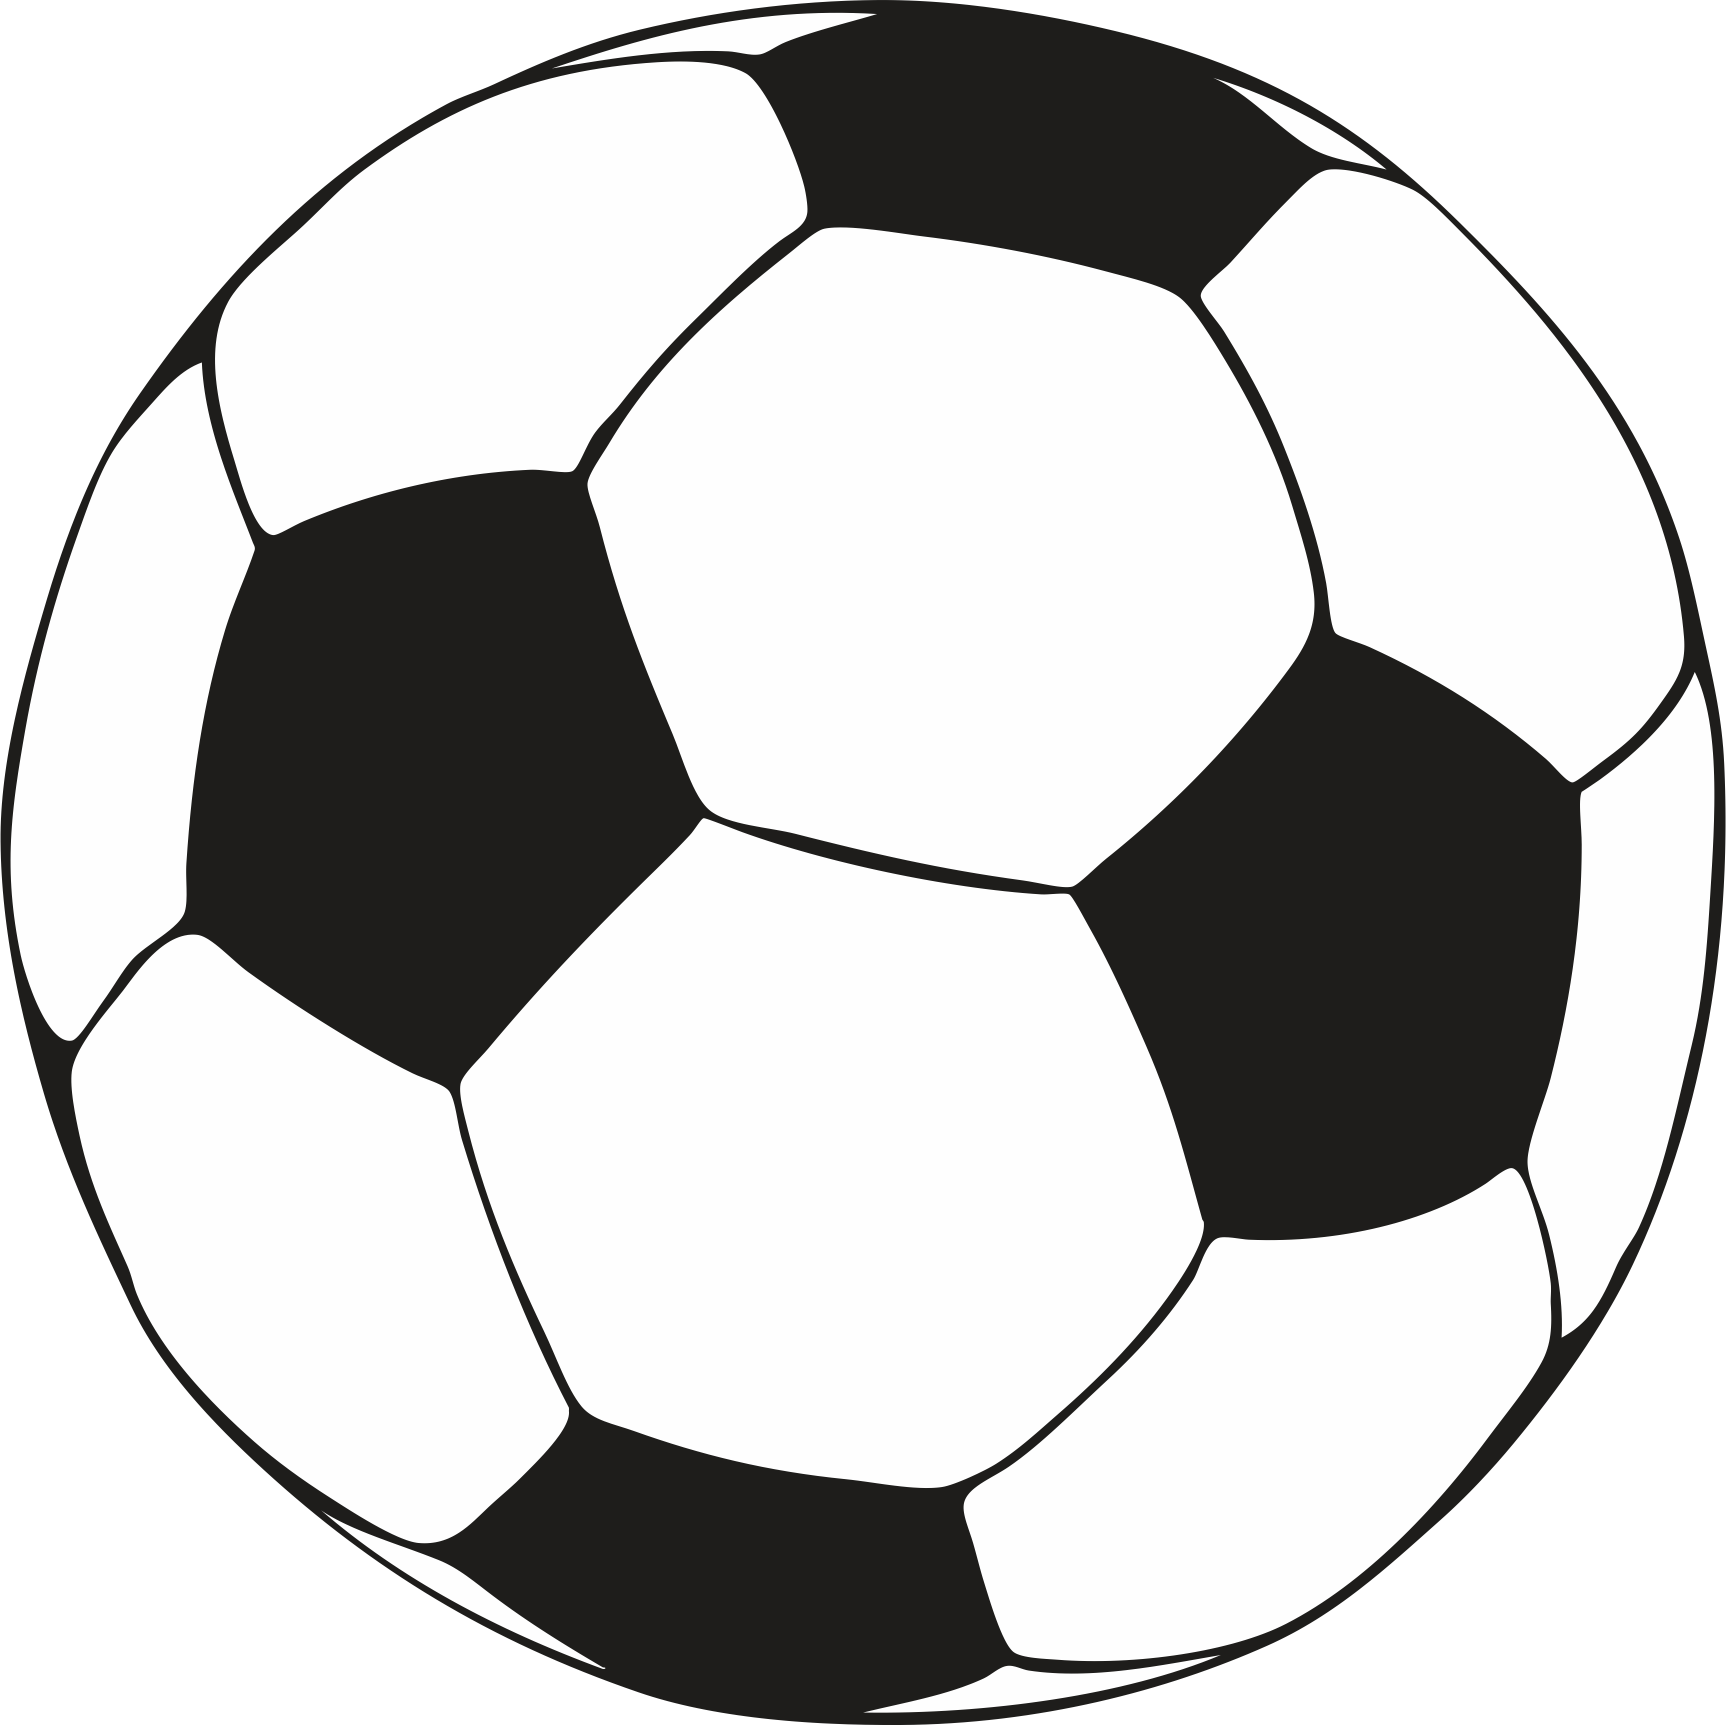 Football Ball Clipart | Free download best Football Ball Clipart on ...